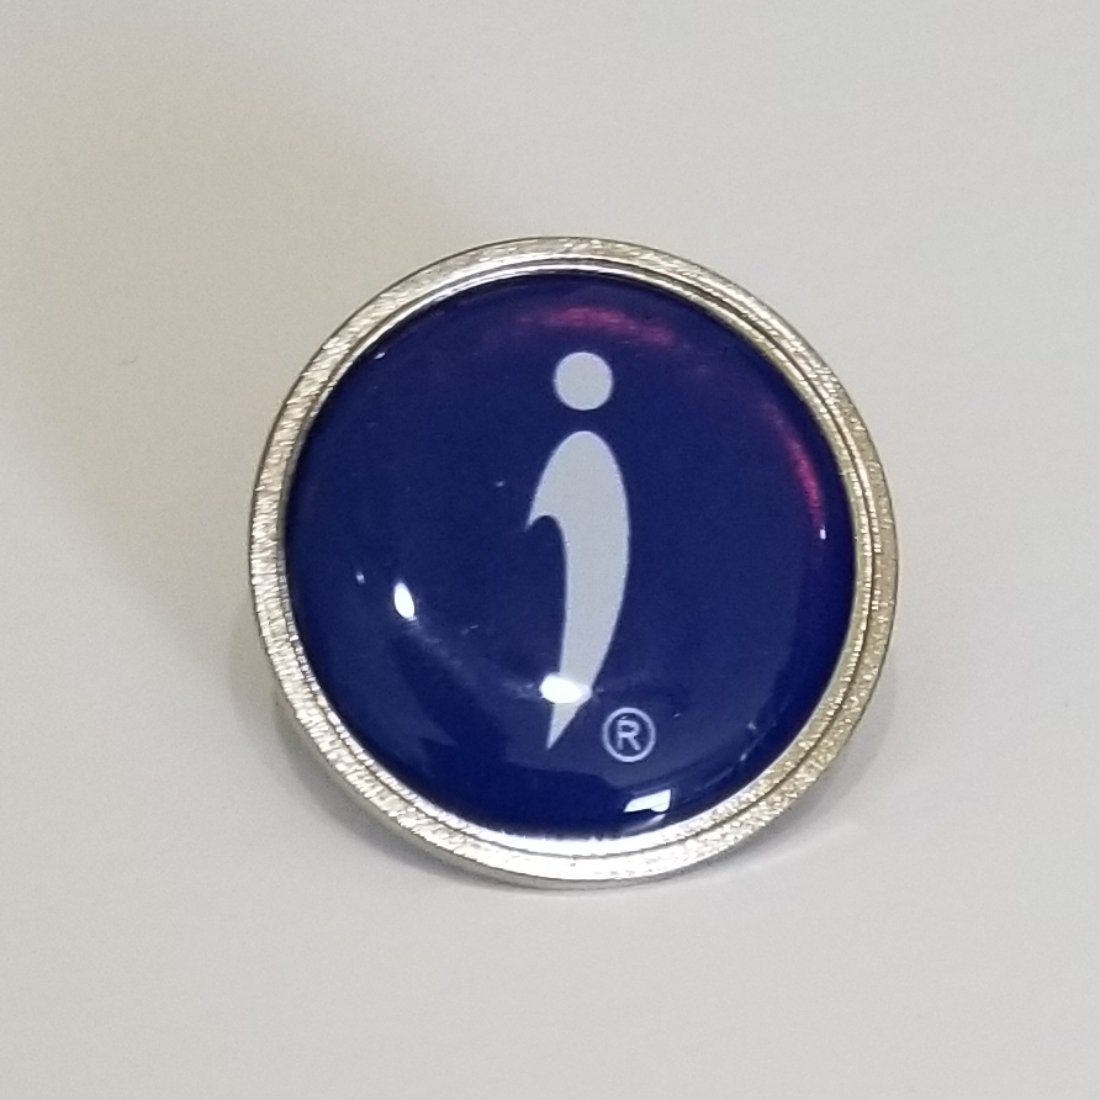 Conversation starter products include lapel pin